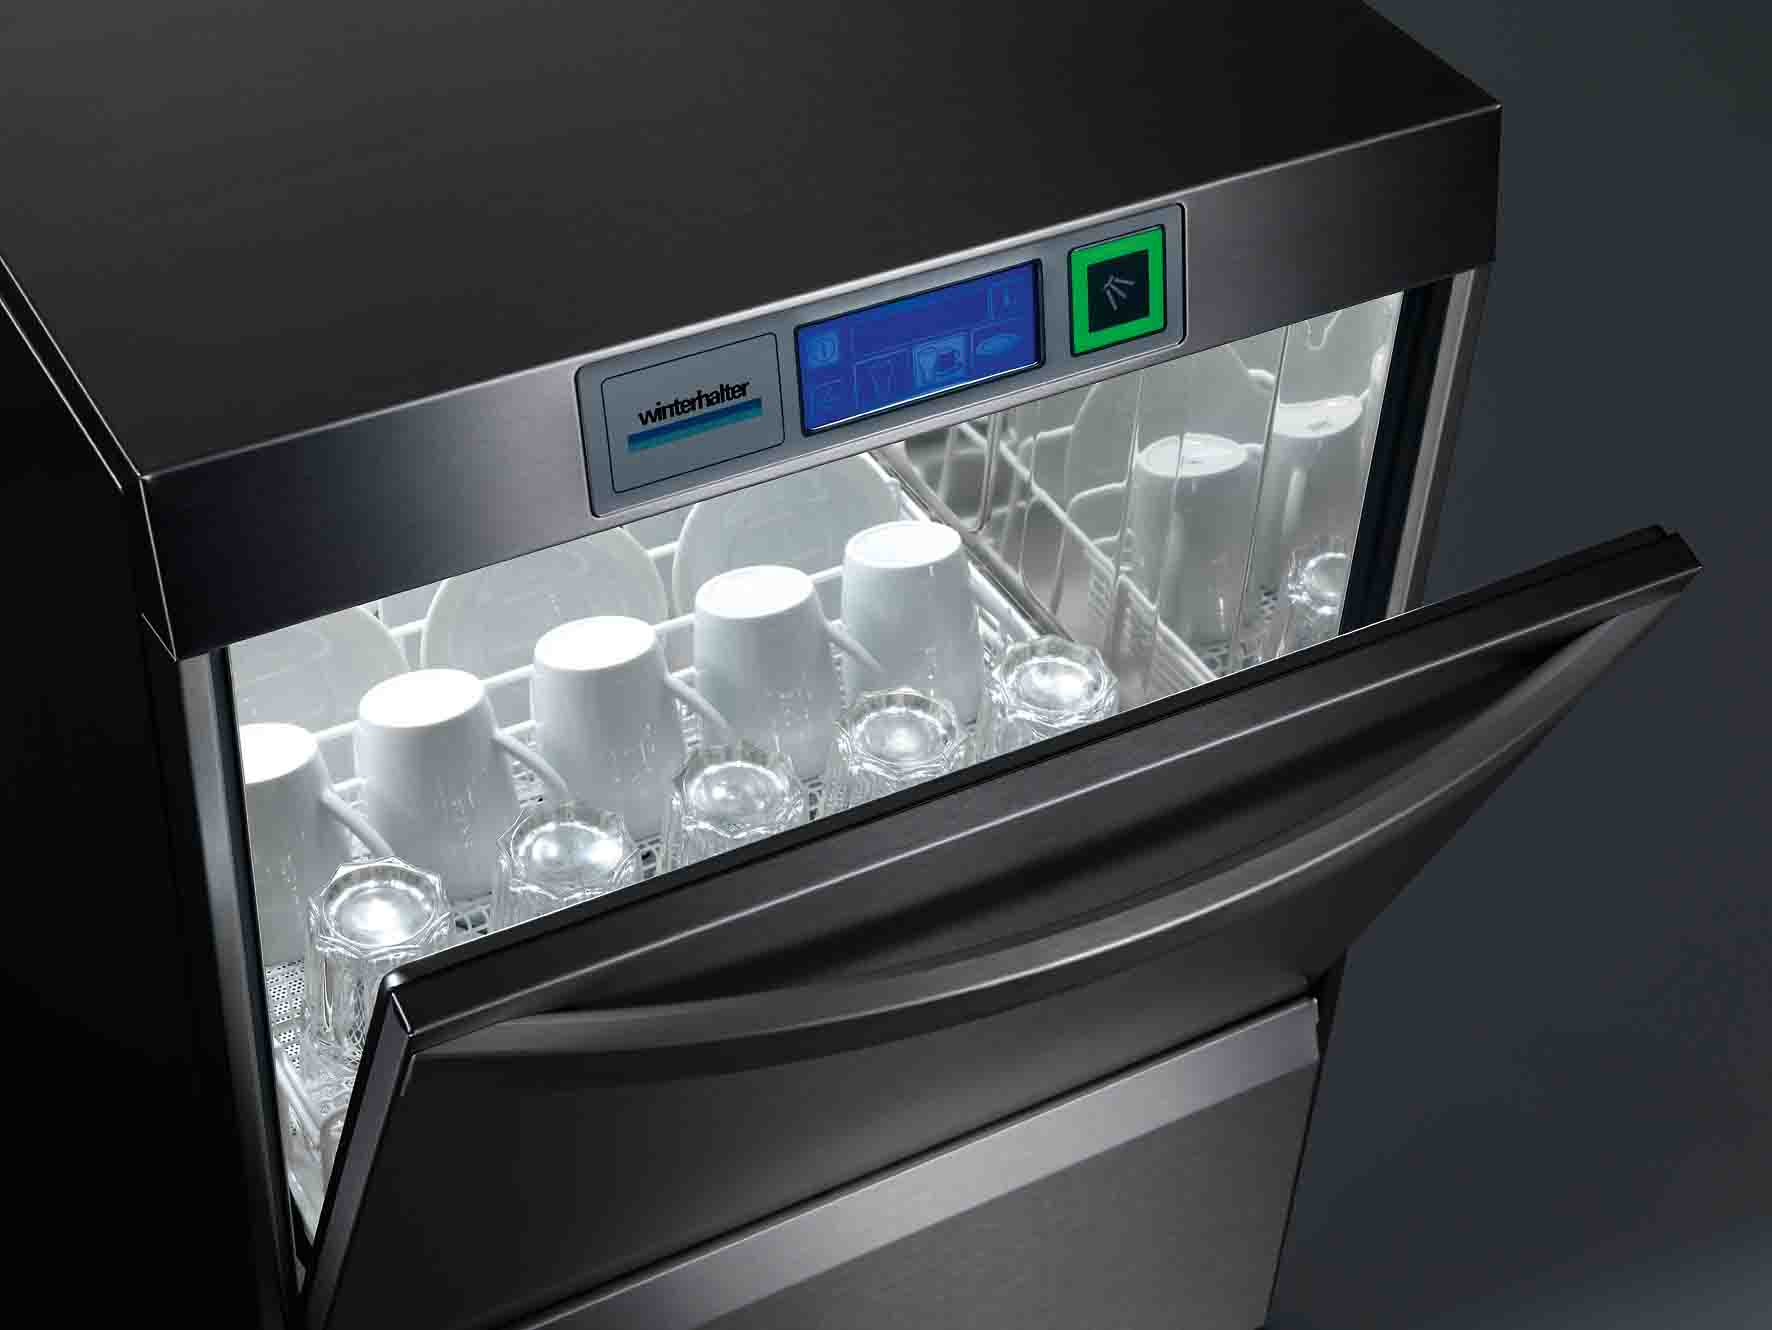 catering equipment winterhalter has energy saving ideas for foodservice operations in garden. Black Bedroom Furniture Sets. Home Design Ideas